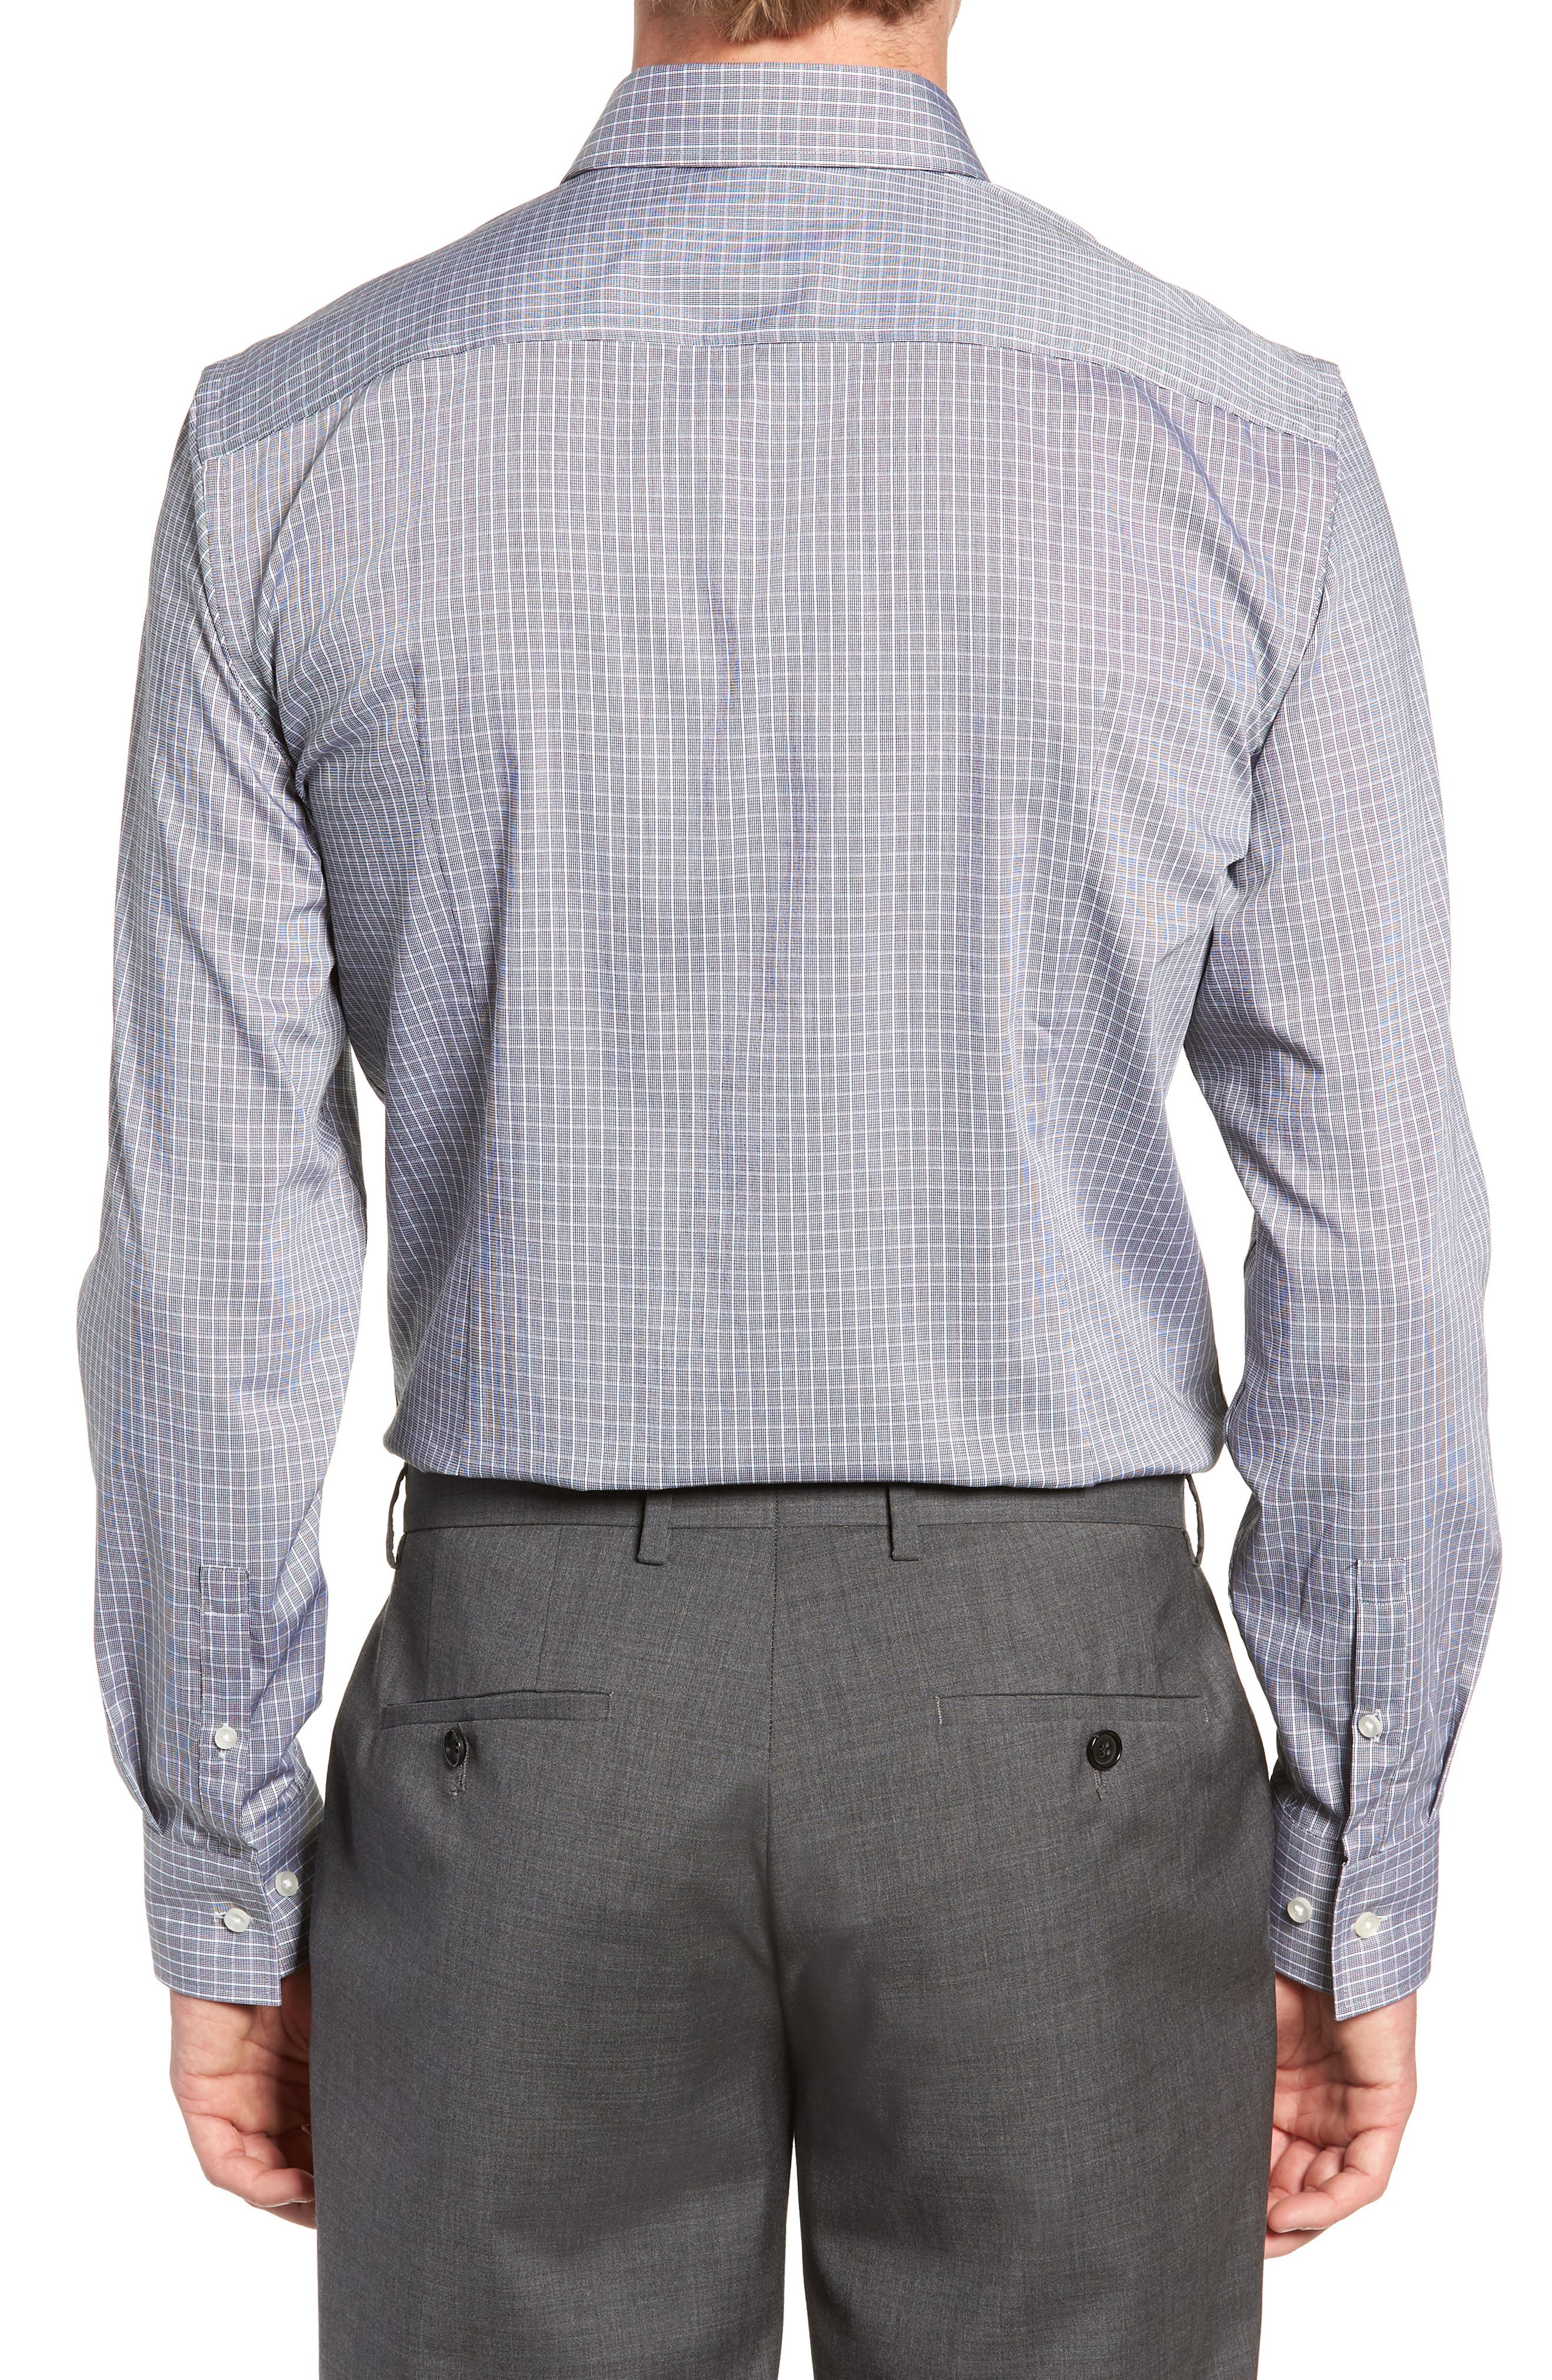 Jenno Trim Fit Check Dress Shirt,                             Alternate thumbnail 3, color,                             003